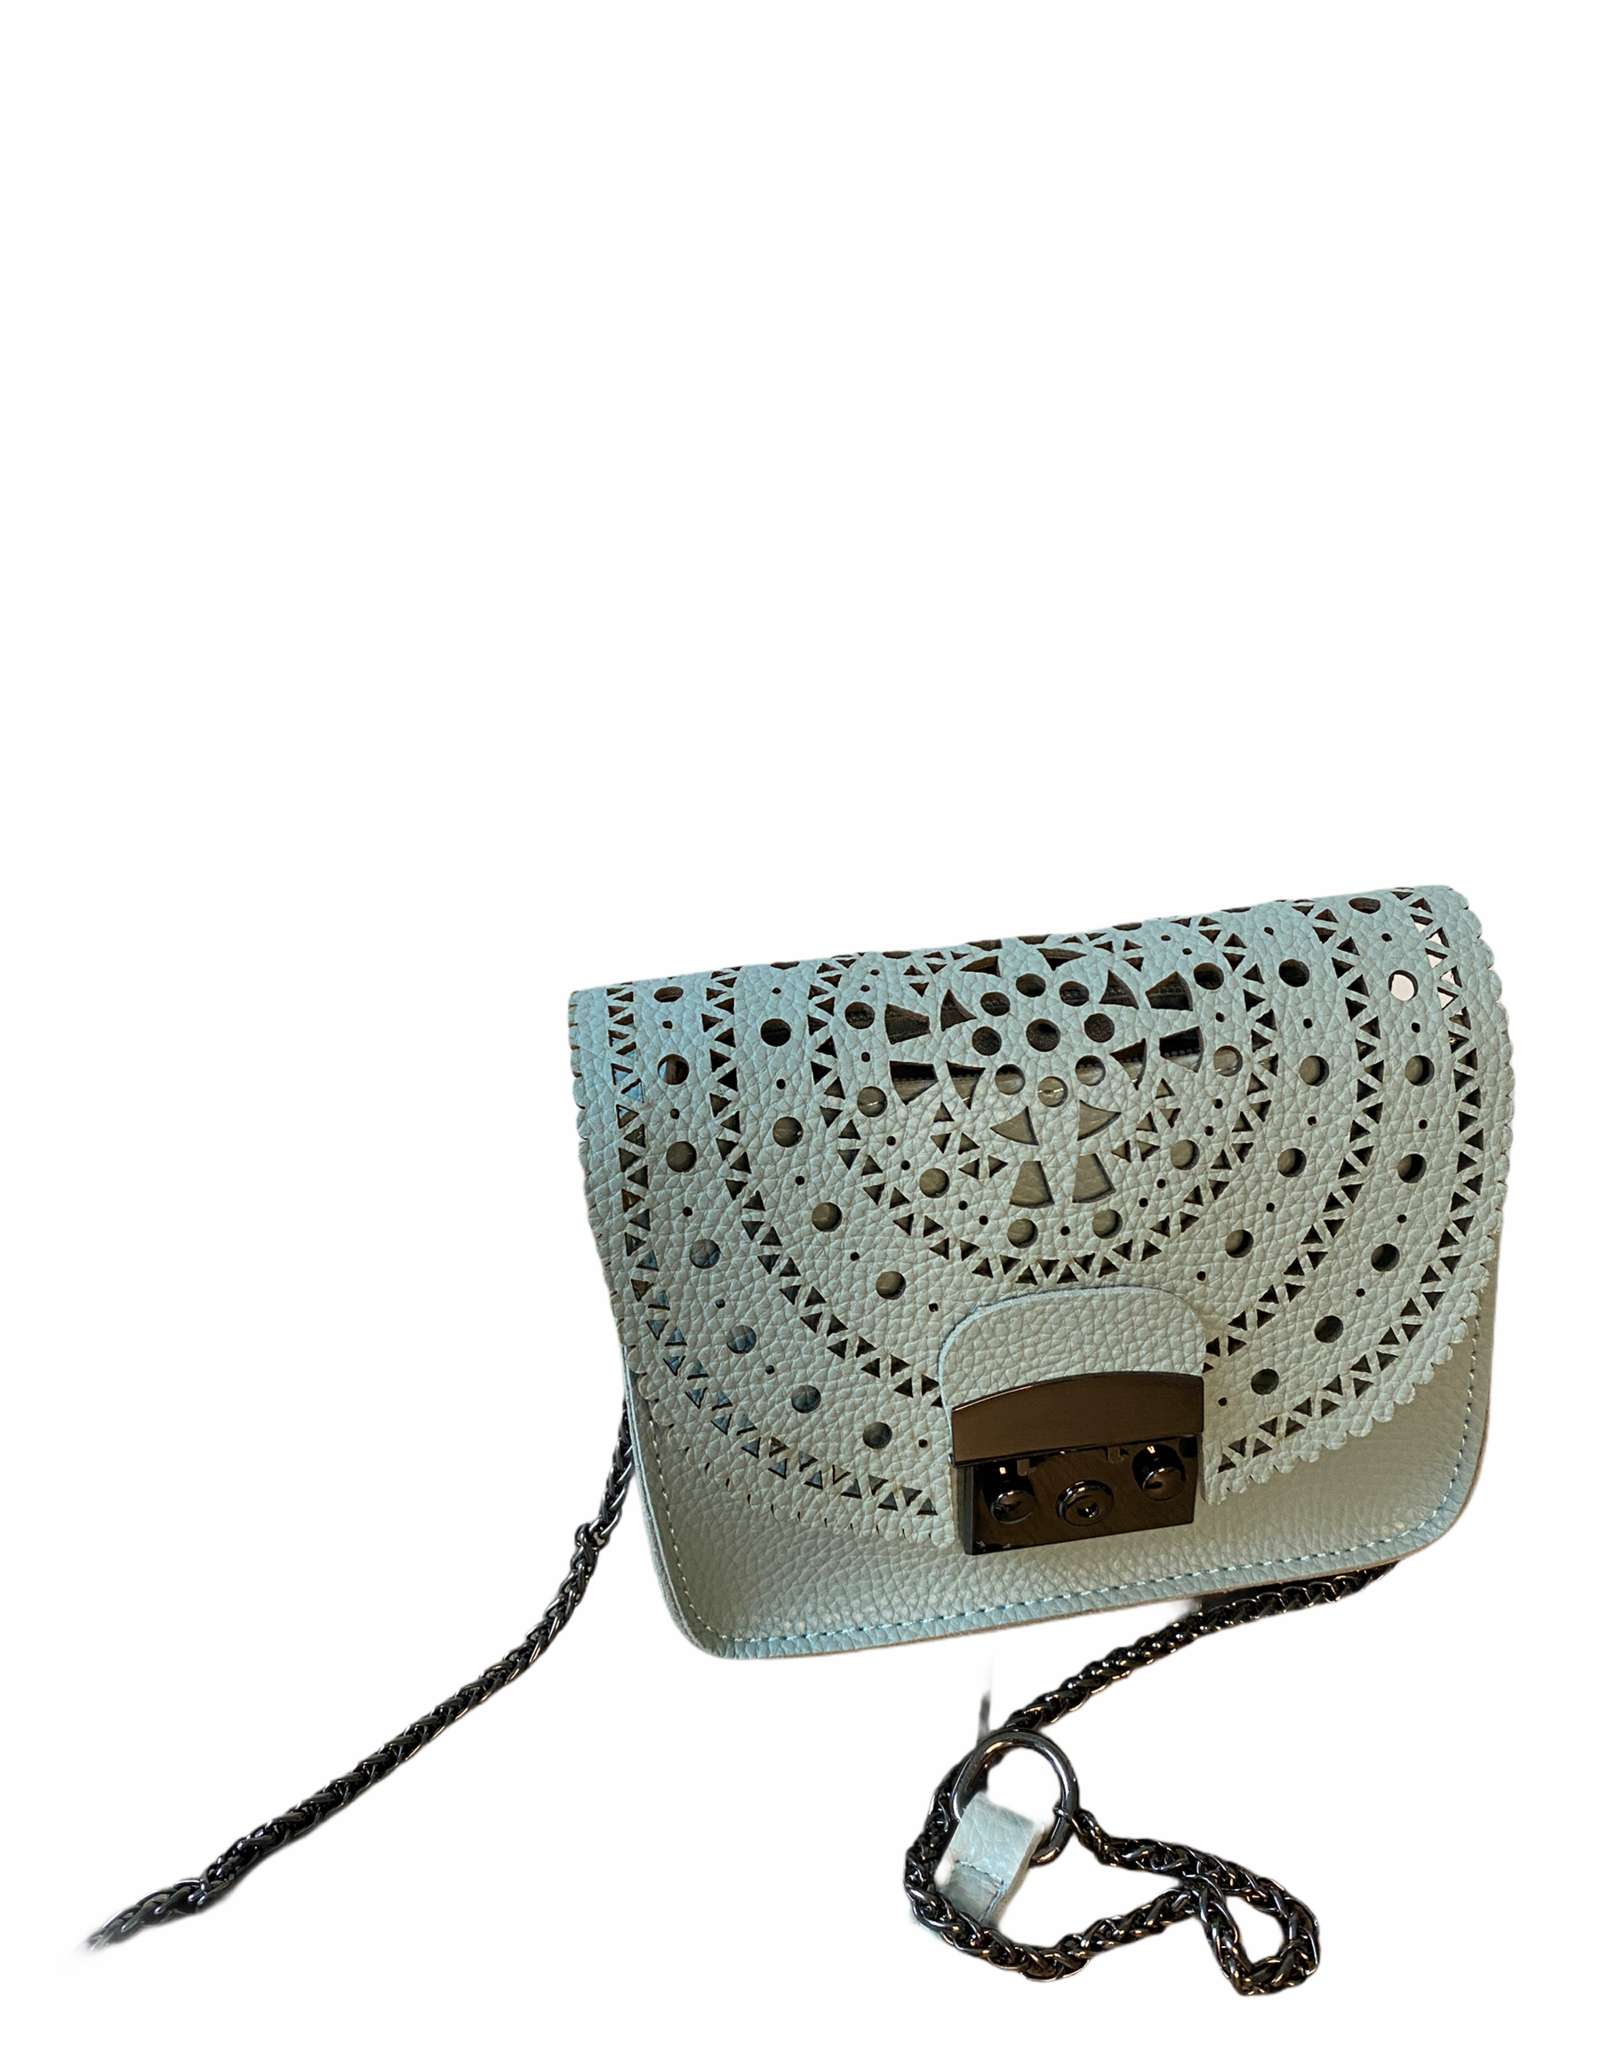 Little bag in artificial leather with flowerpattern